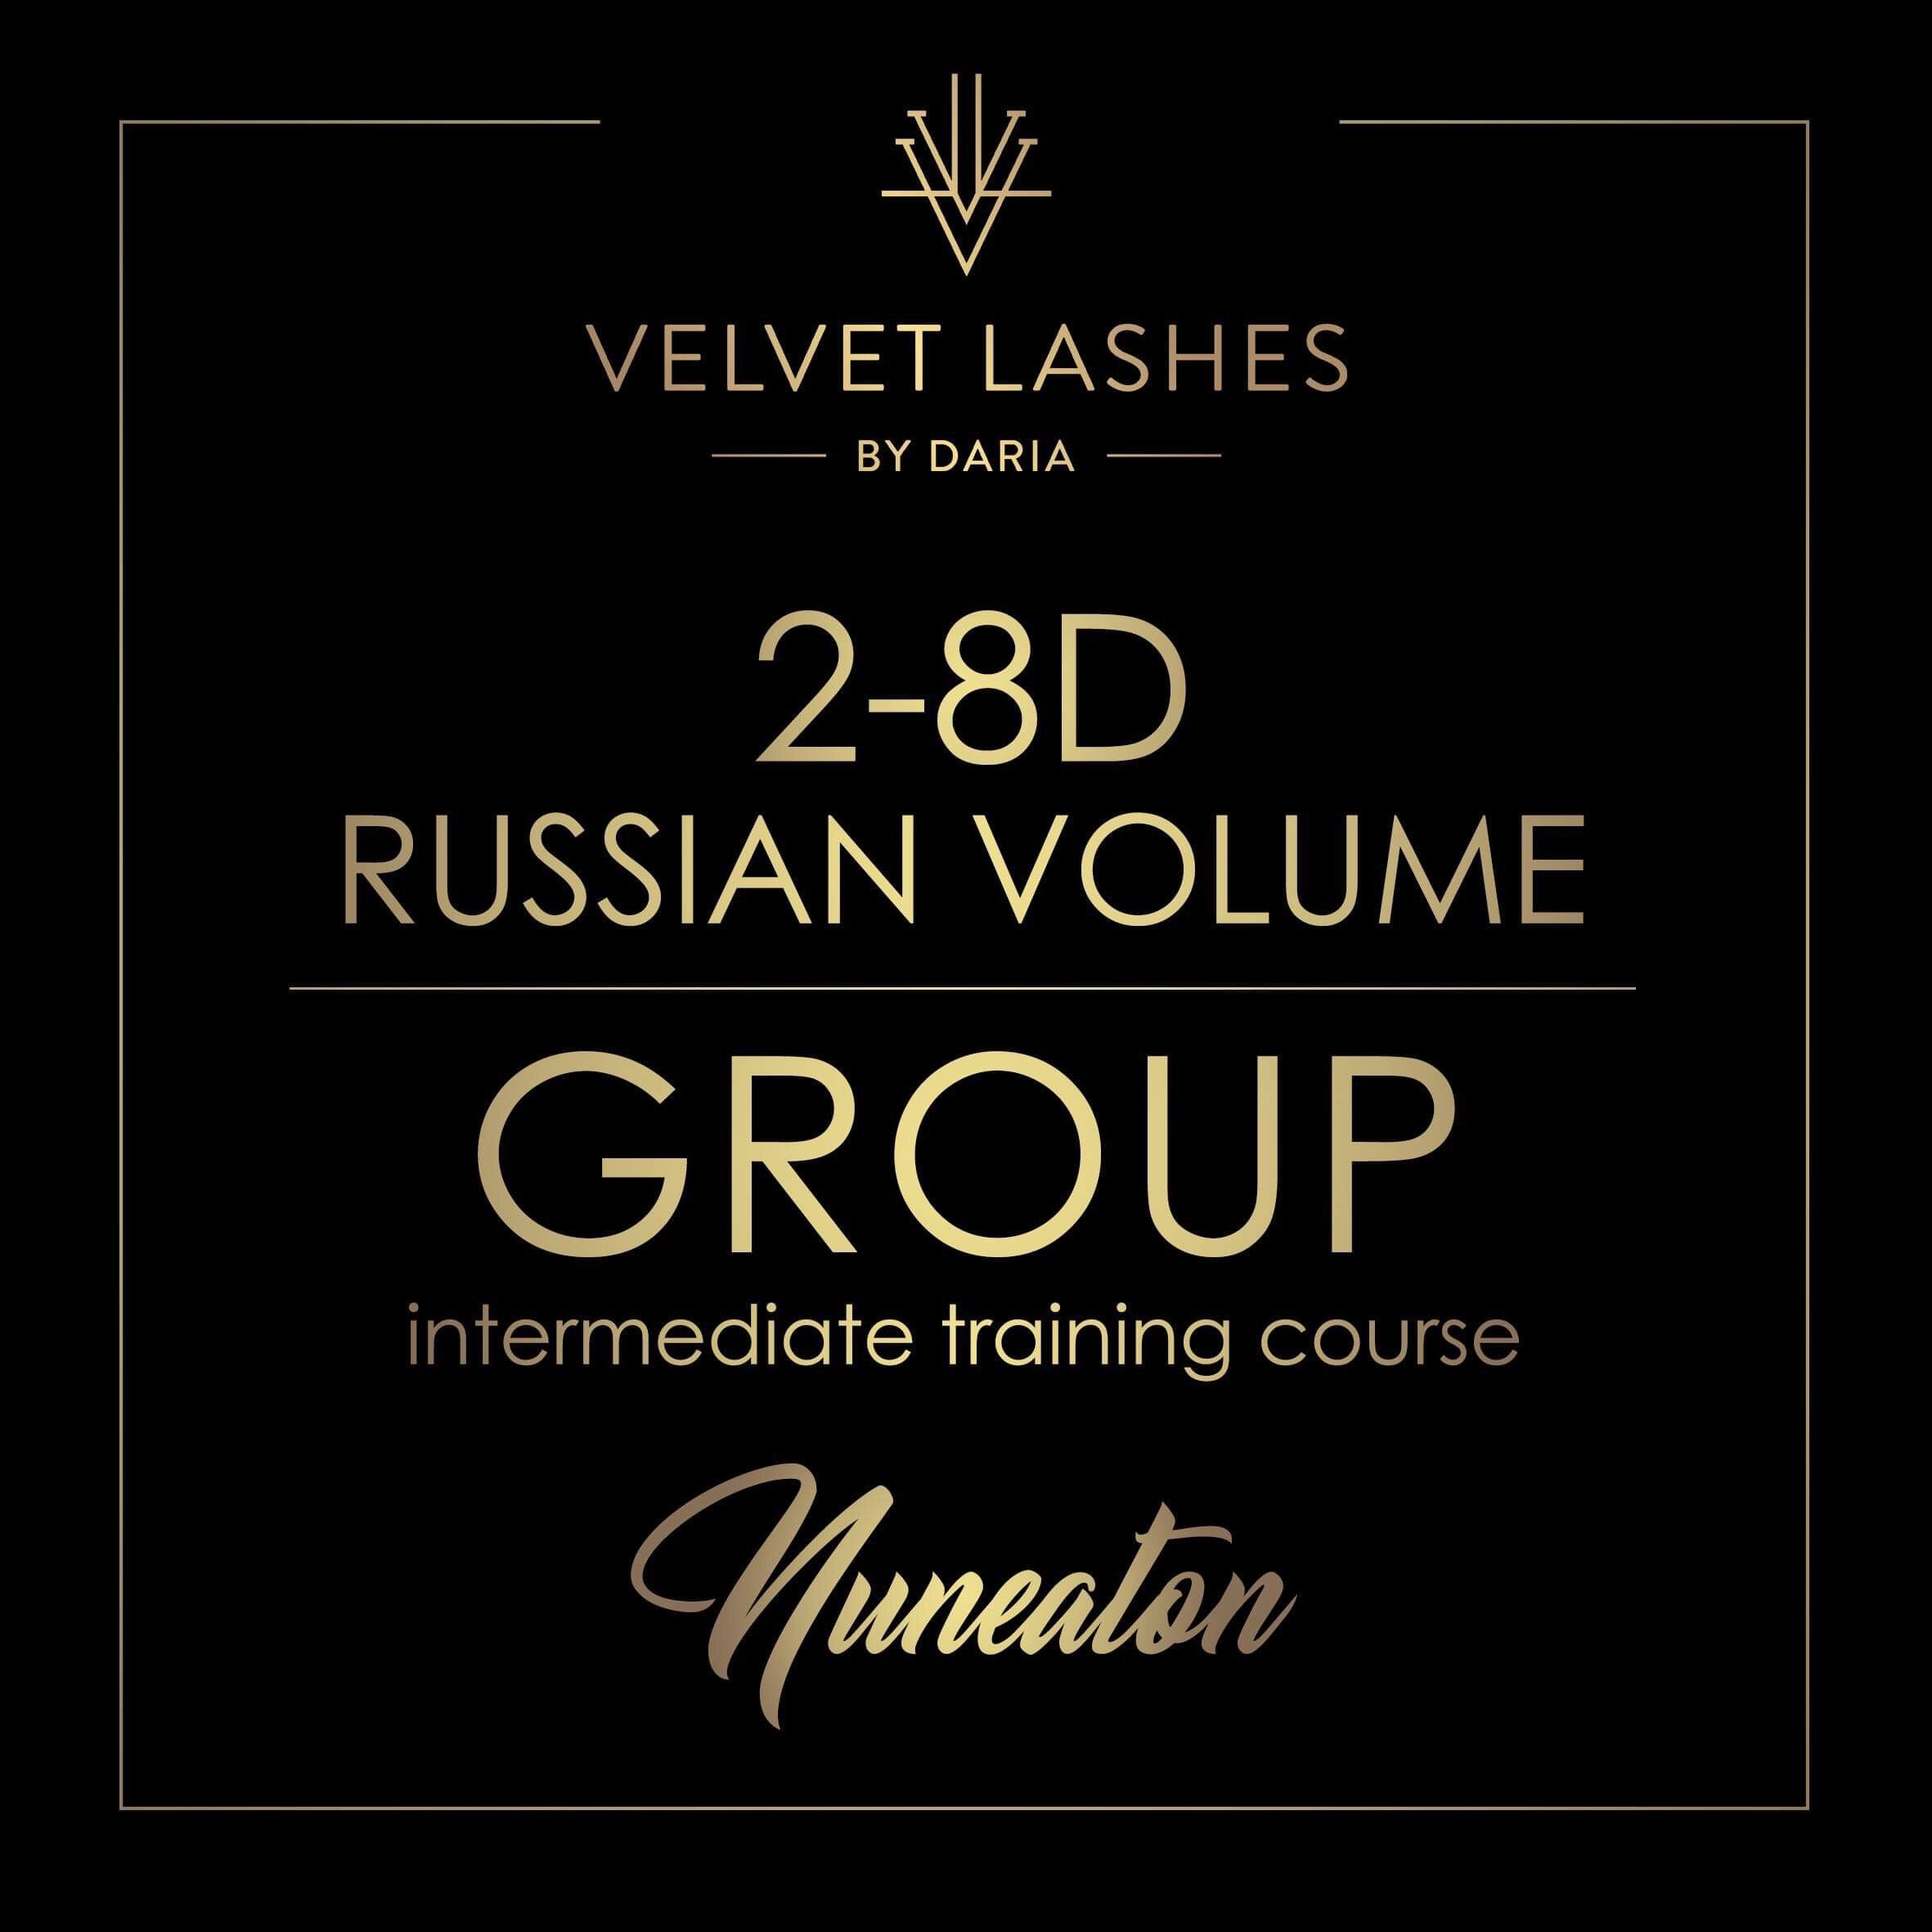 21st September 2-8d Russian Volume TRAINING COURSE IN NUNEATON (UK)